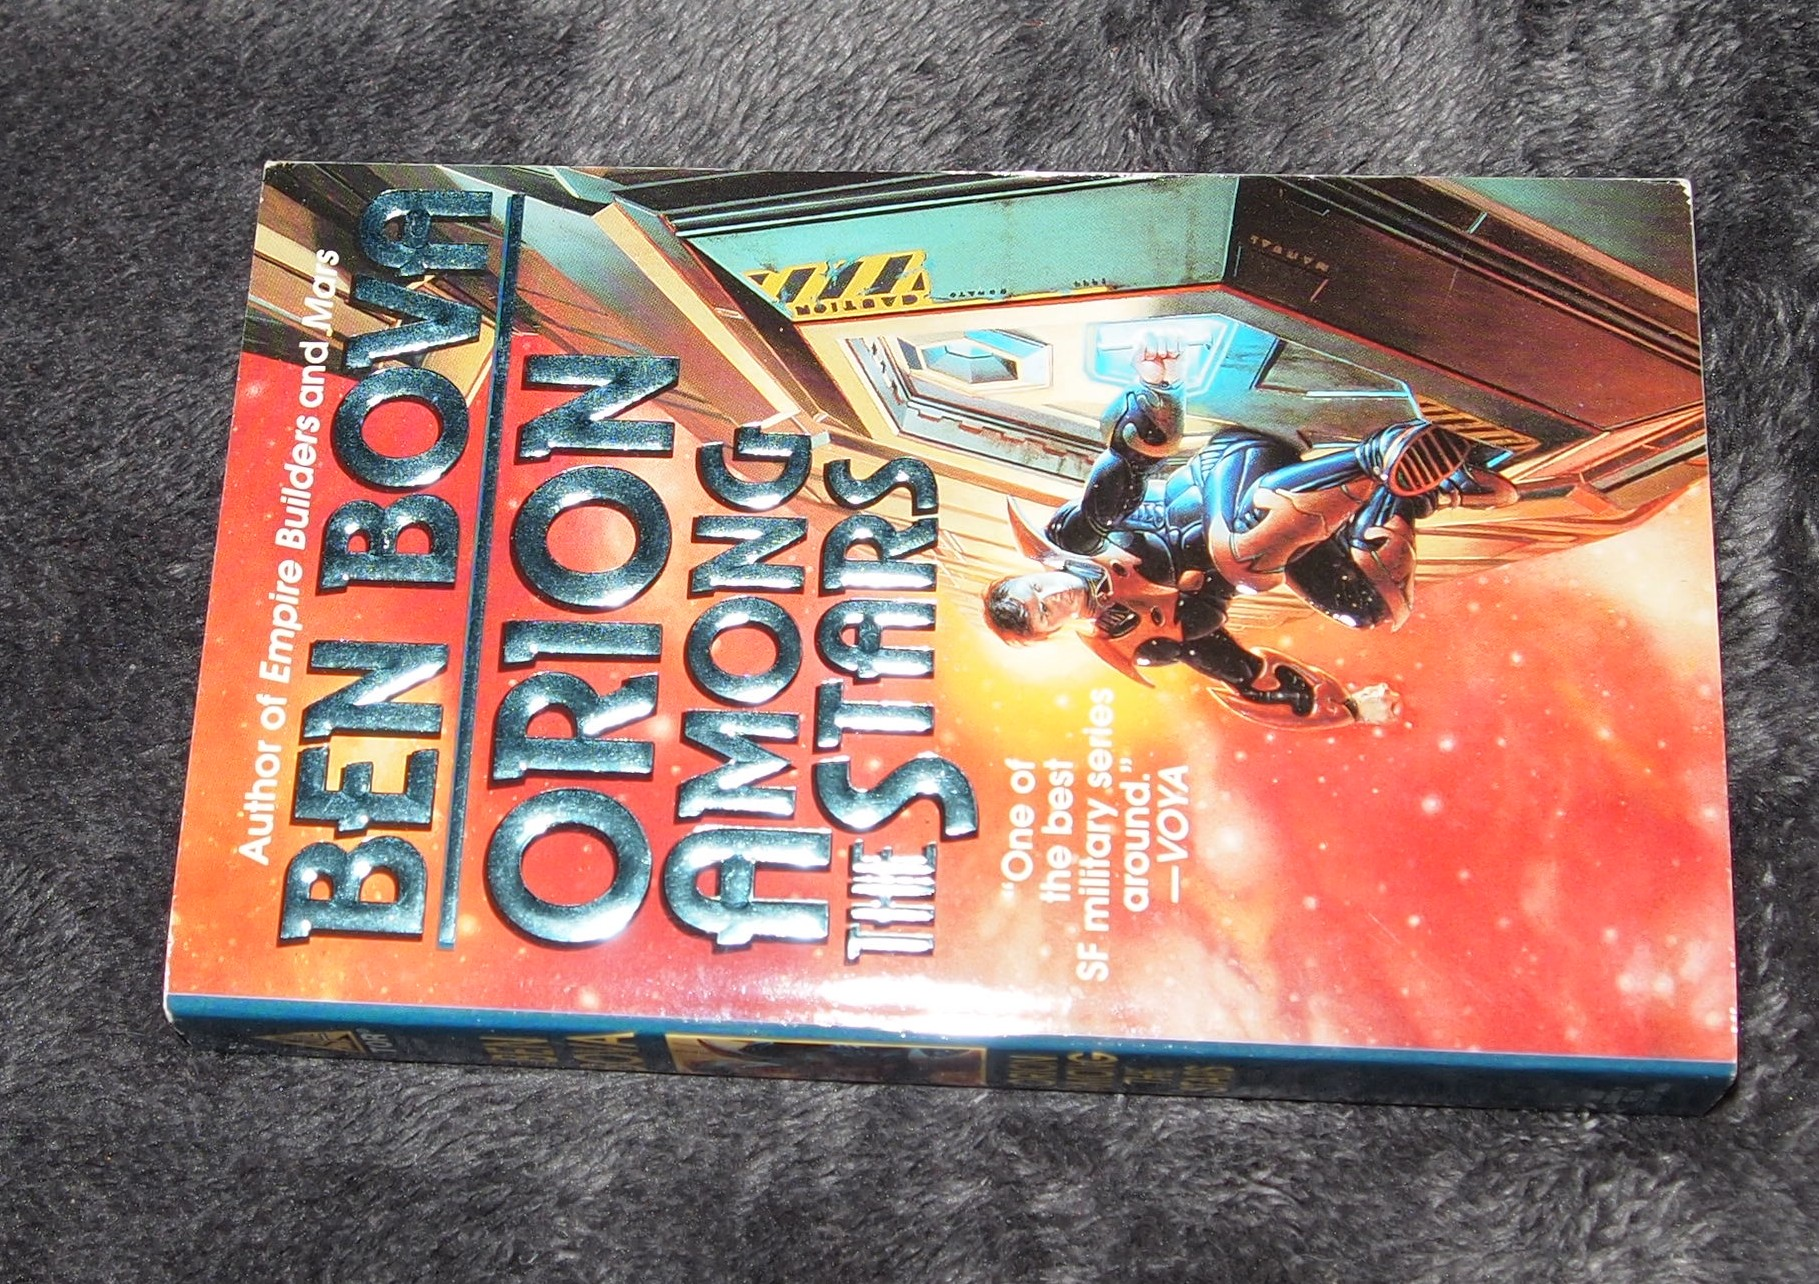 New Frontiers by Ben Bova (2014 Hardcover) 1st edition with Dust Jacket Like New